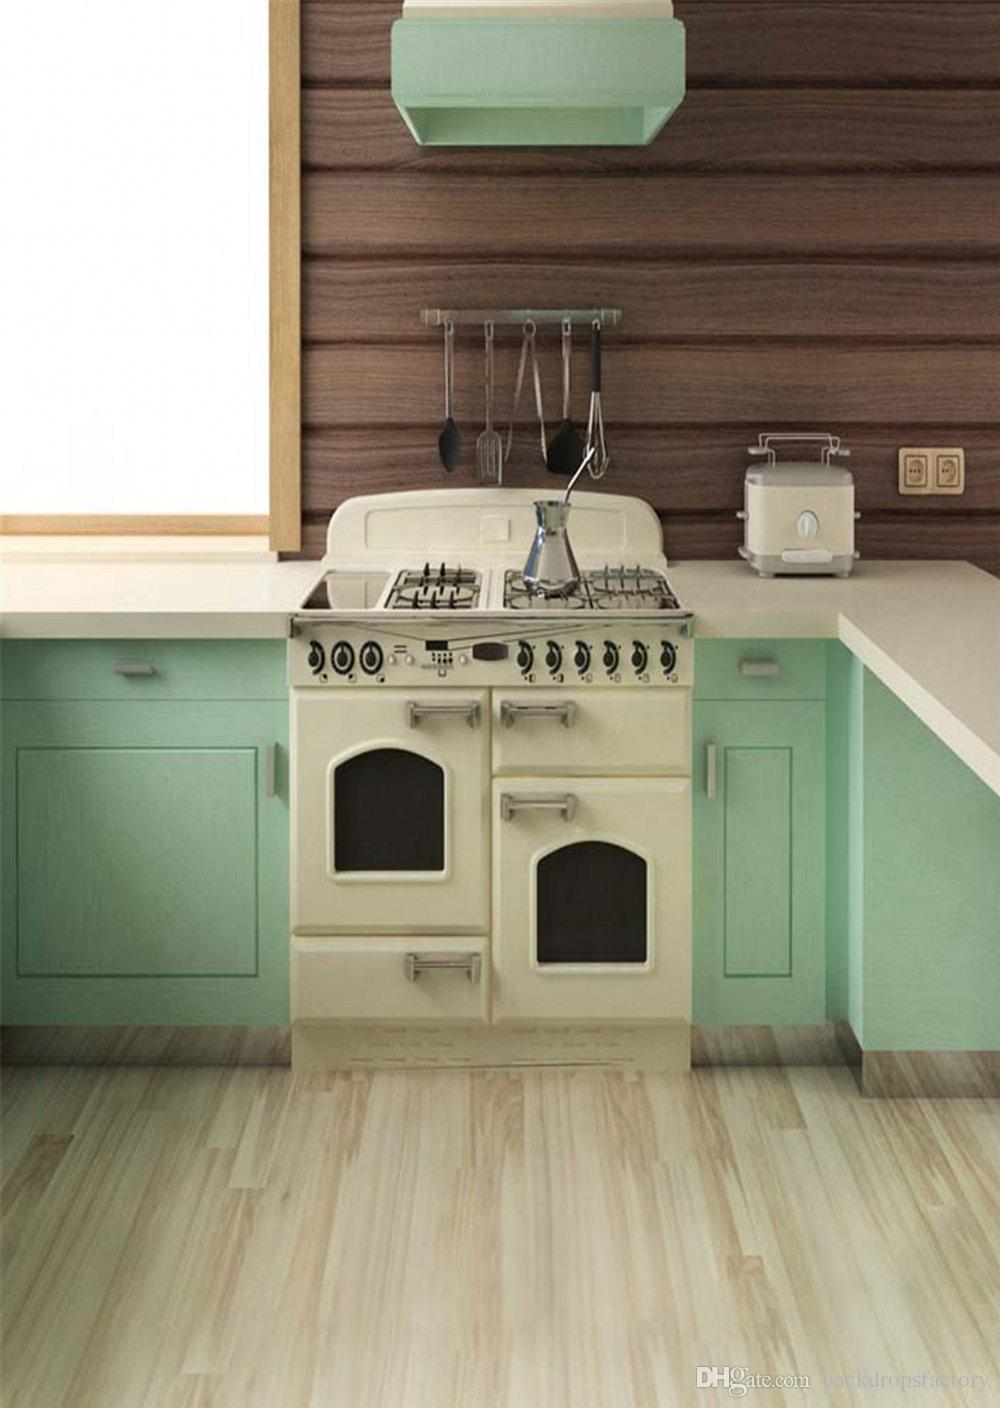 Indoor Kitchen Photography Backdrops Wood Floor Cooking Room Mint Green  Cabinet Baby Shower Backdrop Children Photo Studio Booth Background Kitchen  ...